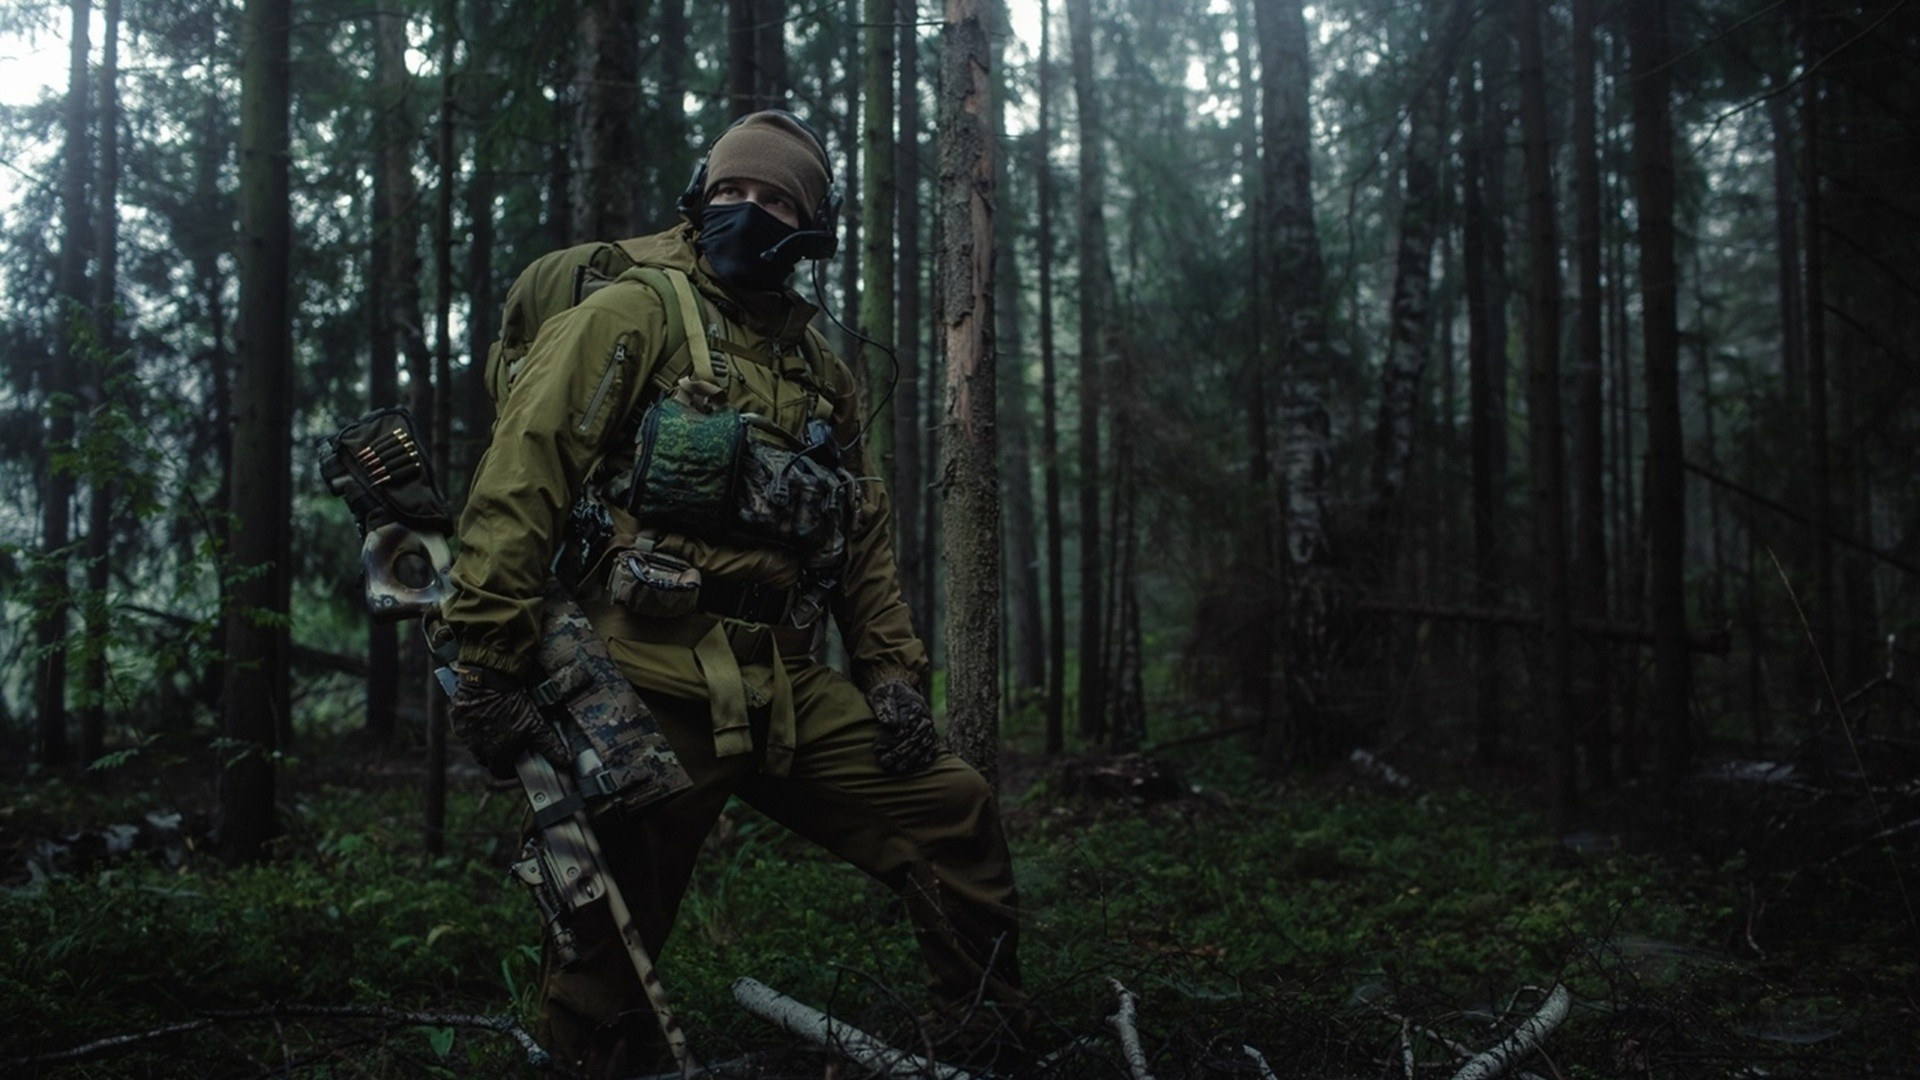 Download Wallpaper 1920x1080 soldiers, forest, bomb, search